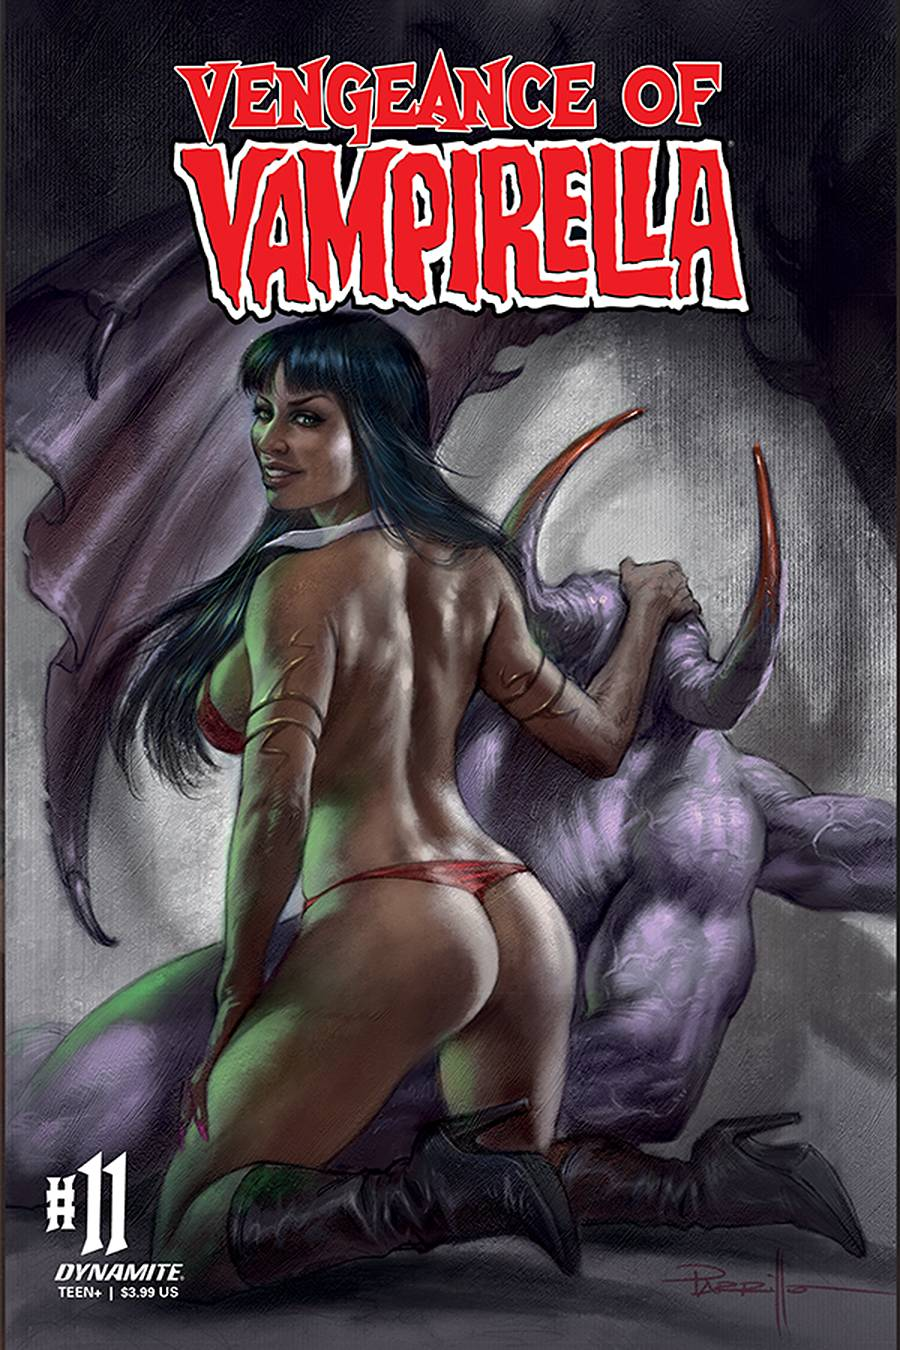 VENGEANCE OF VAMPIRELLA #11 CVR A PARRILLO